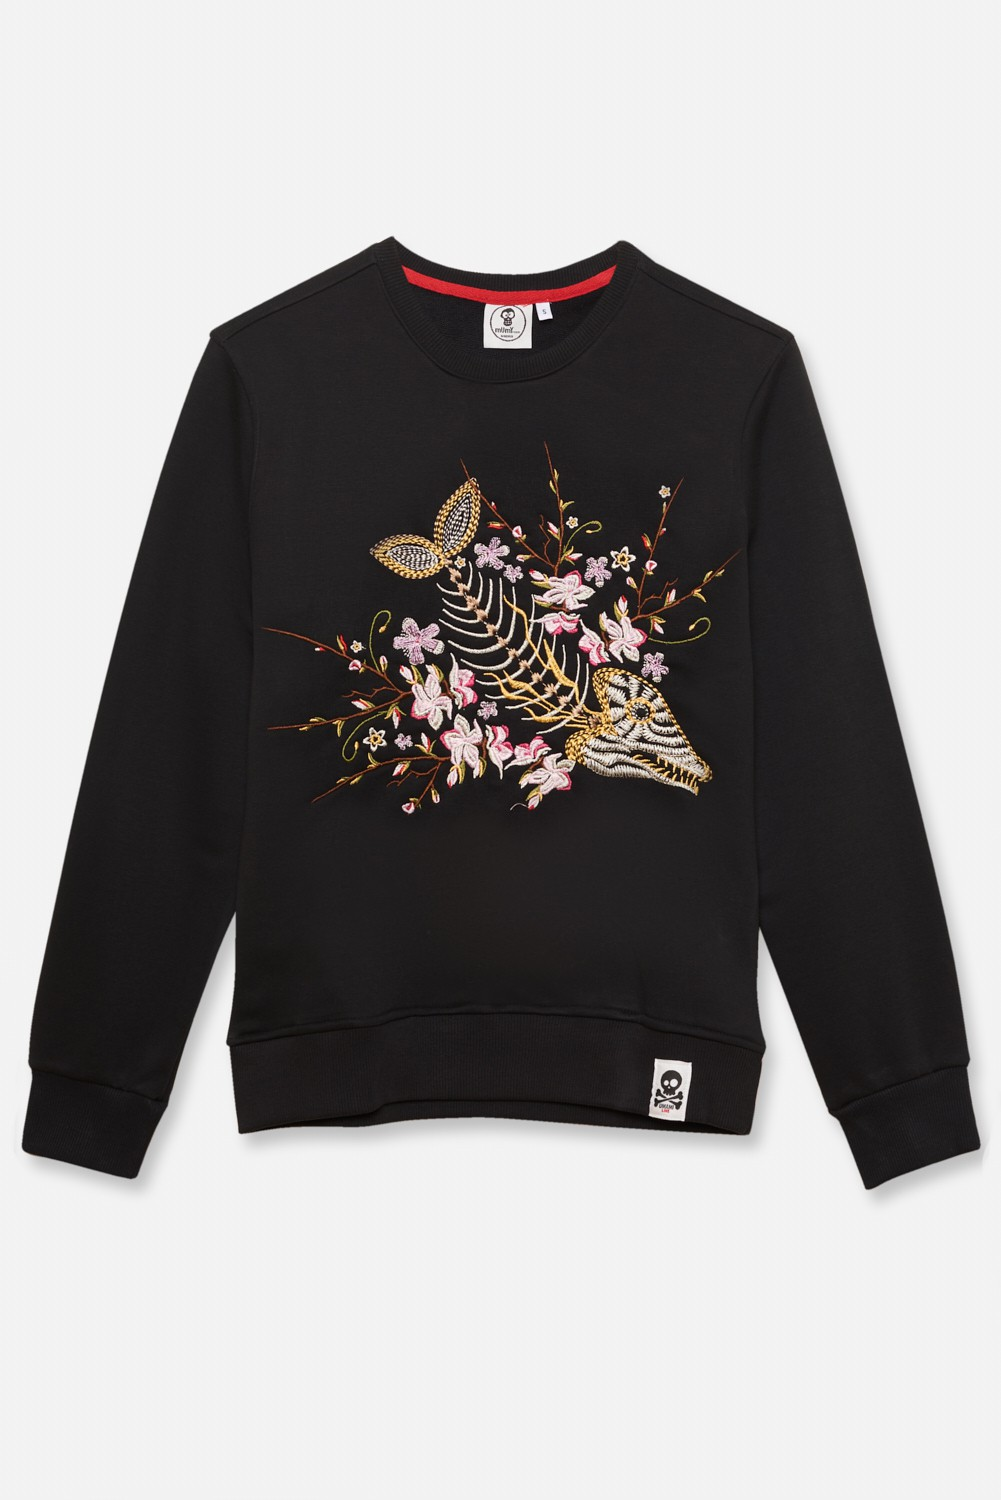 KID´S EMBROIDERED JERSEY UMAMI LINE FISHKELETON